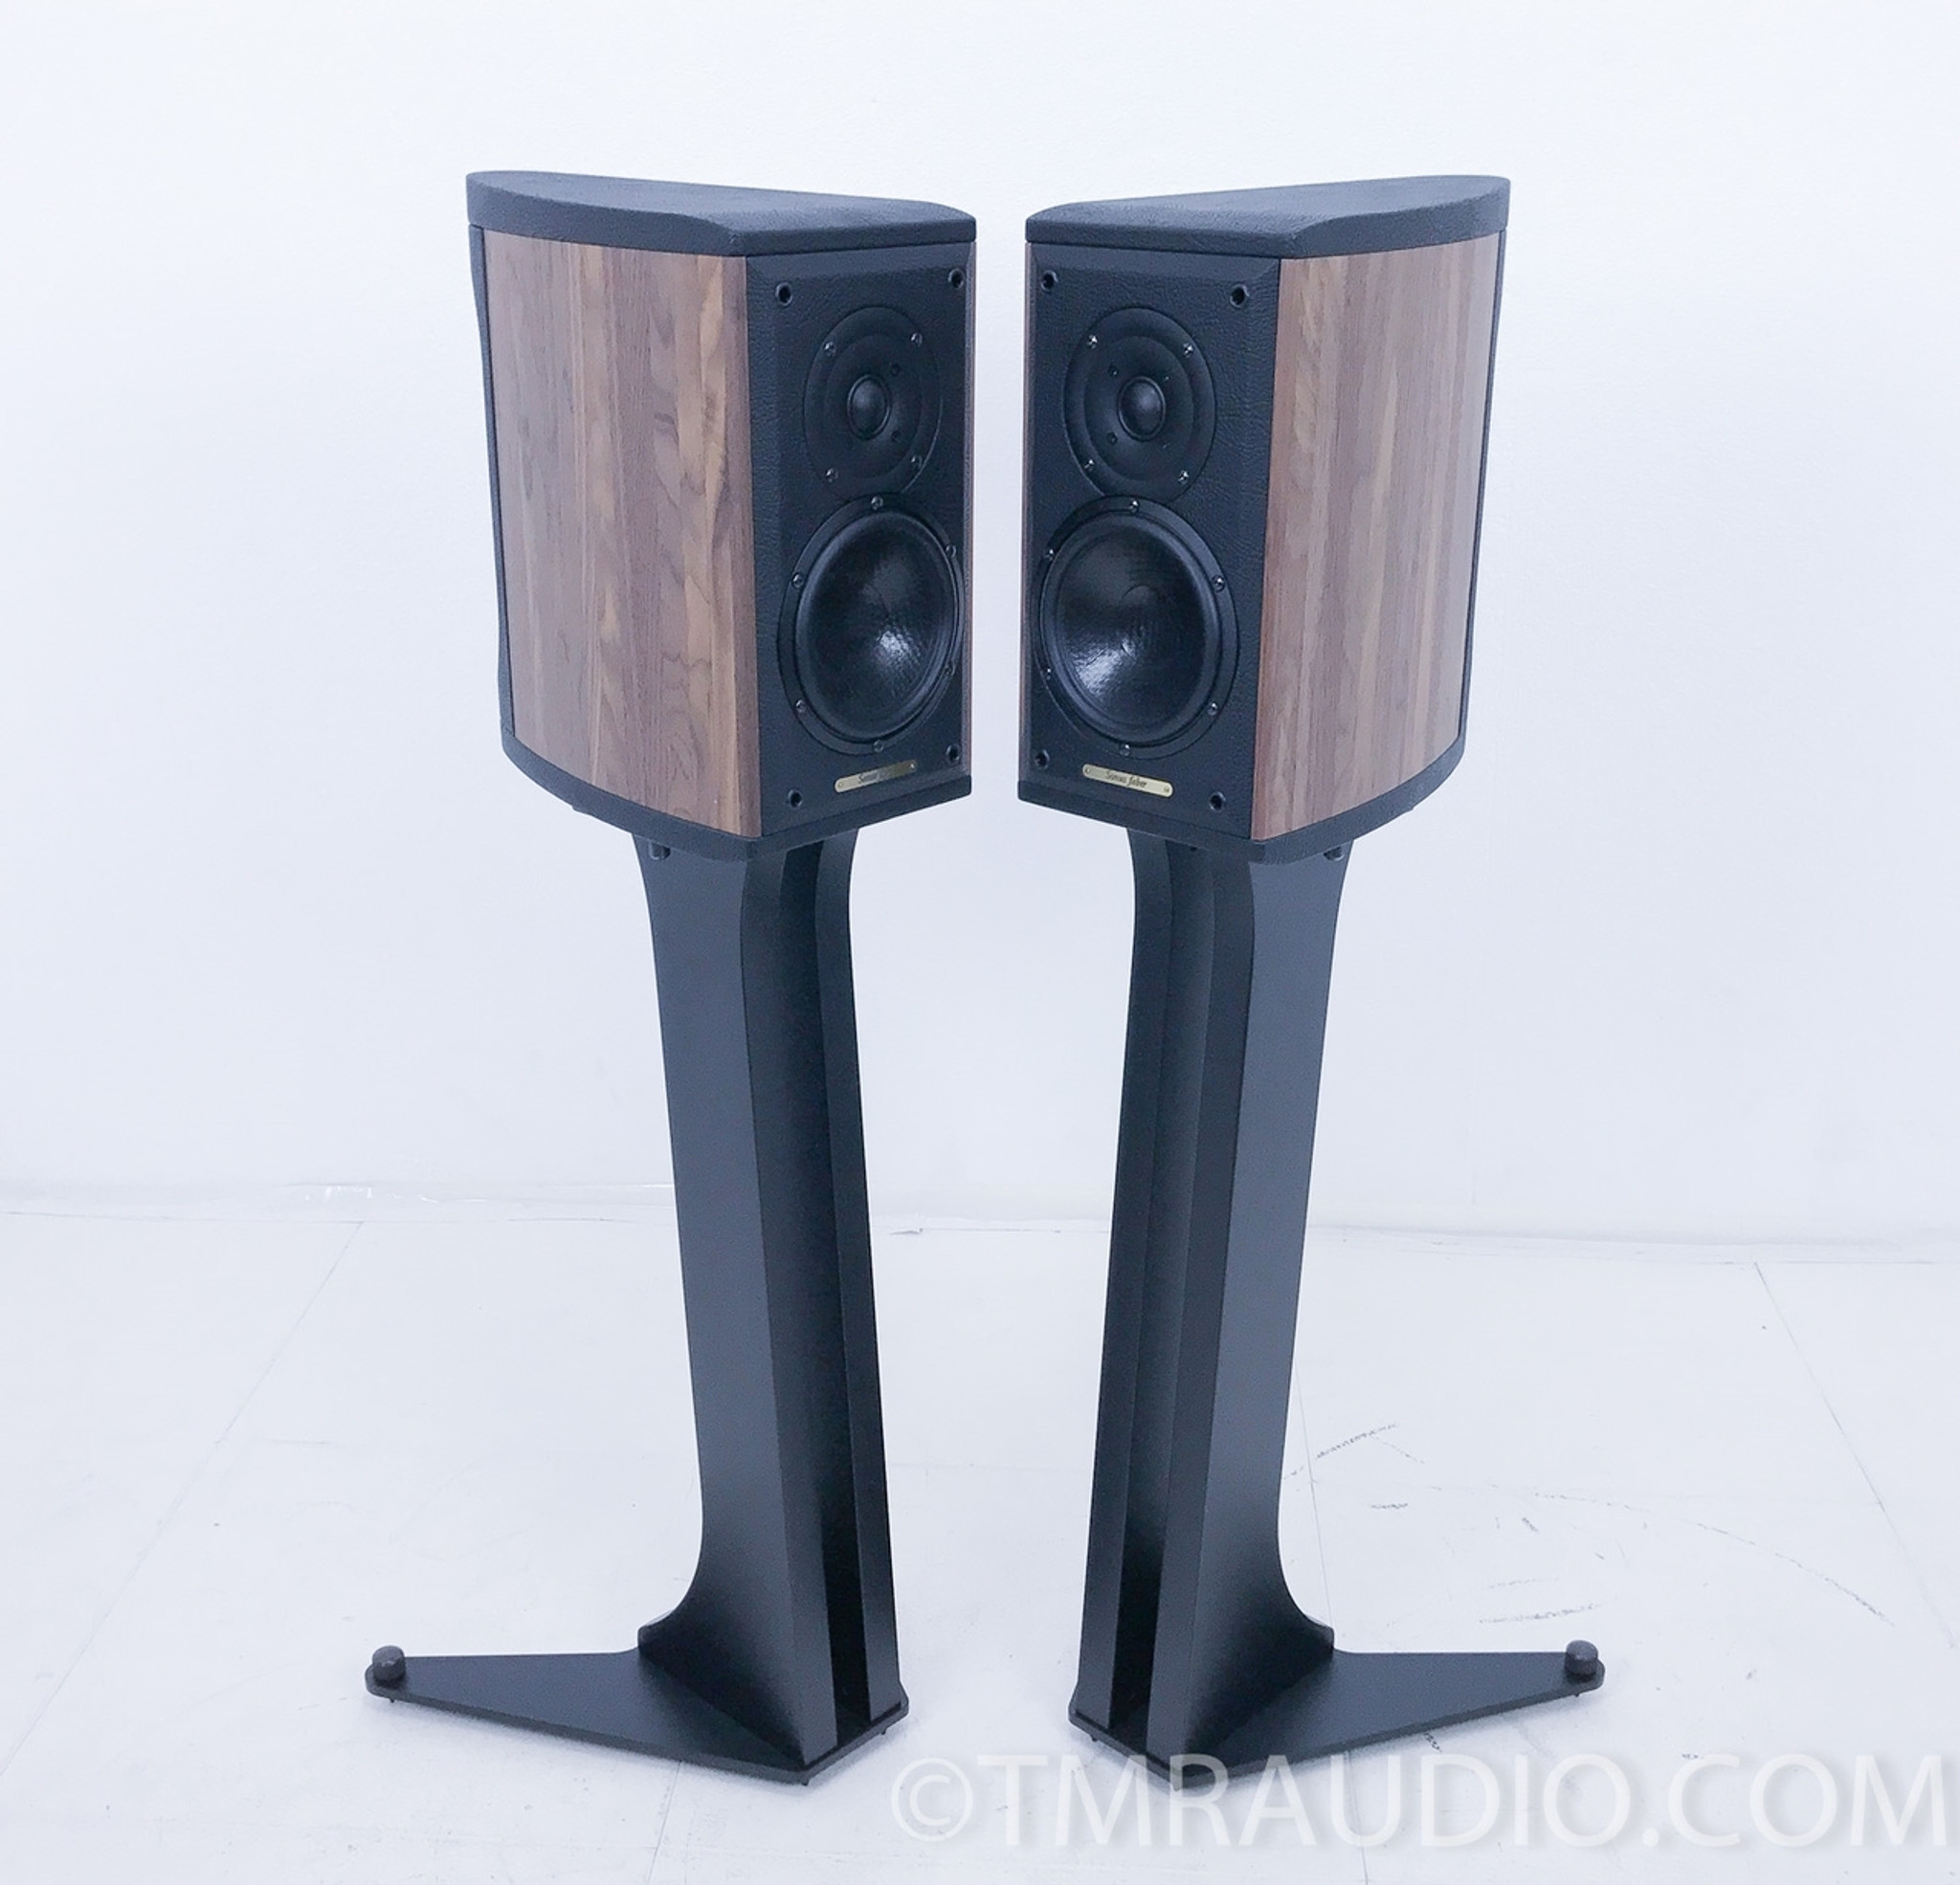 sonus faber liuto monitors / speakers w/stands; walnut pair - the